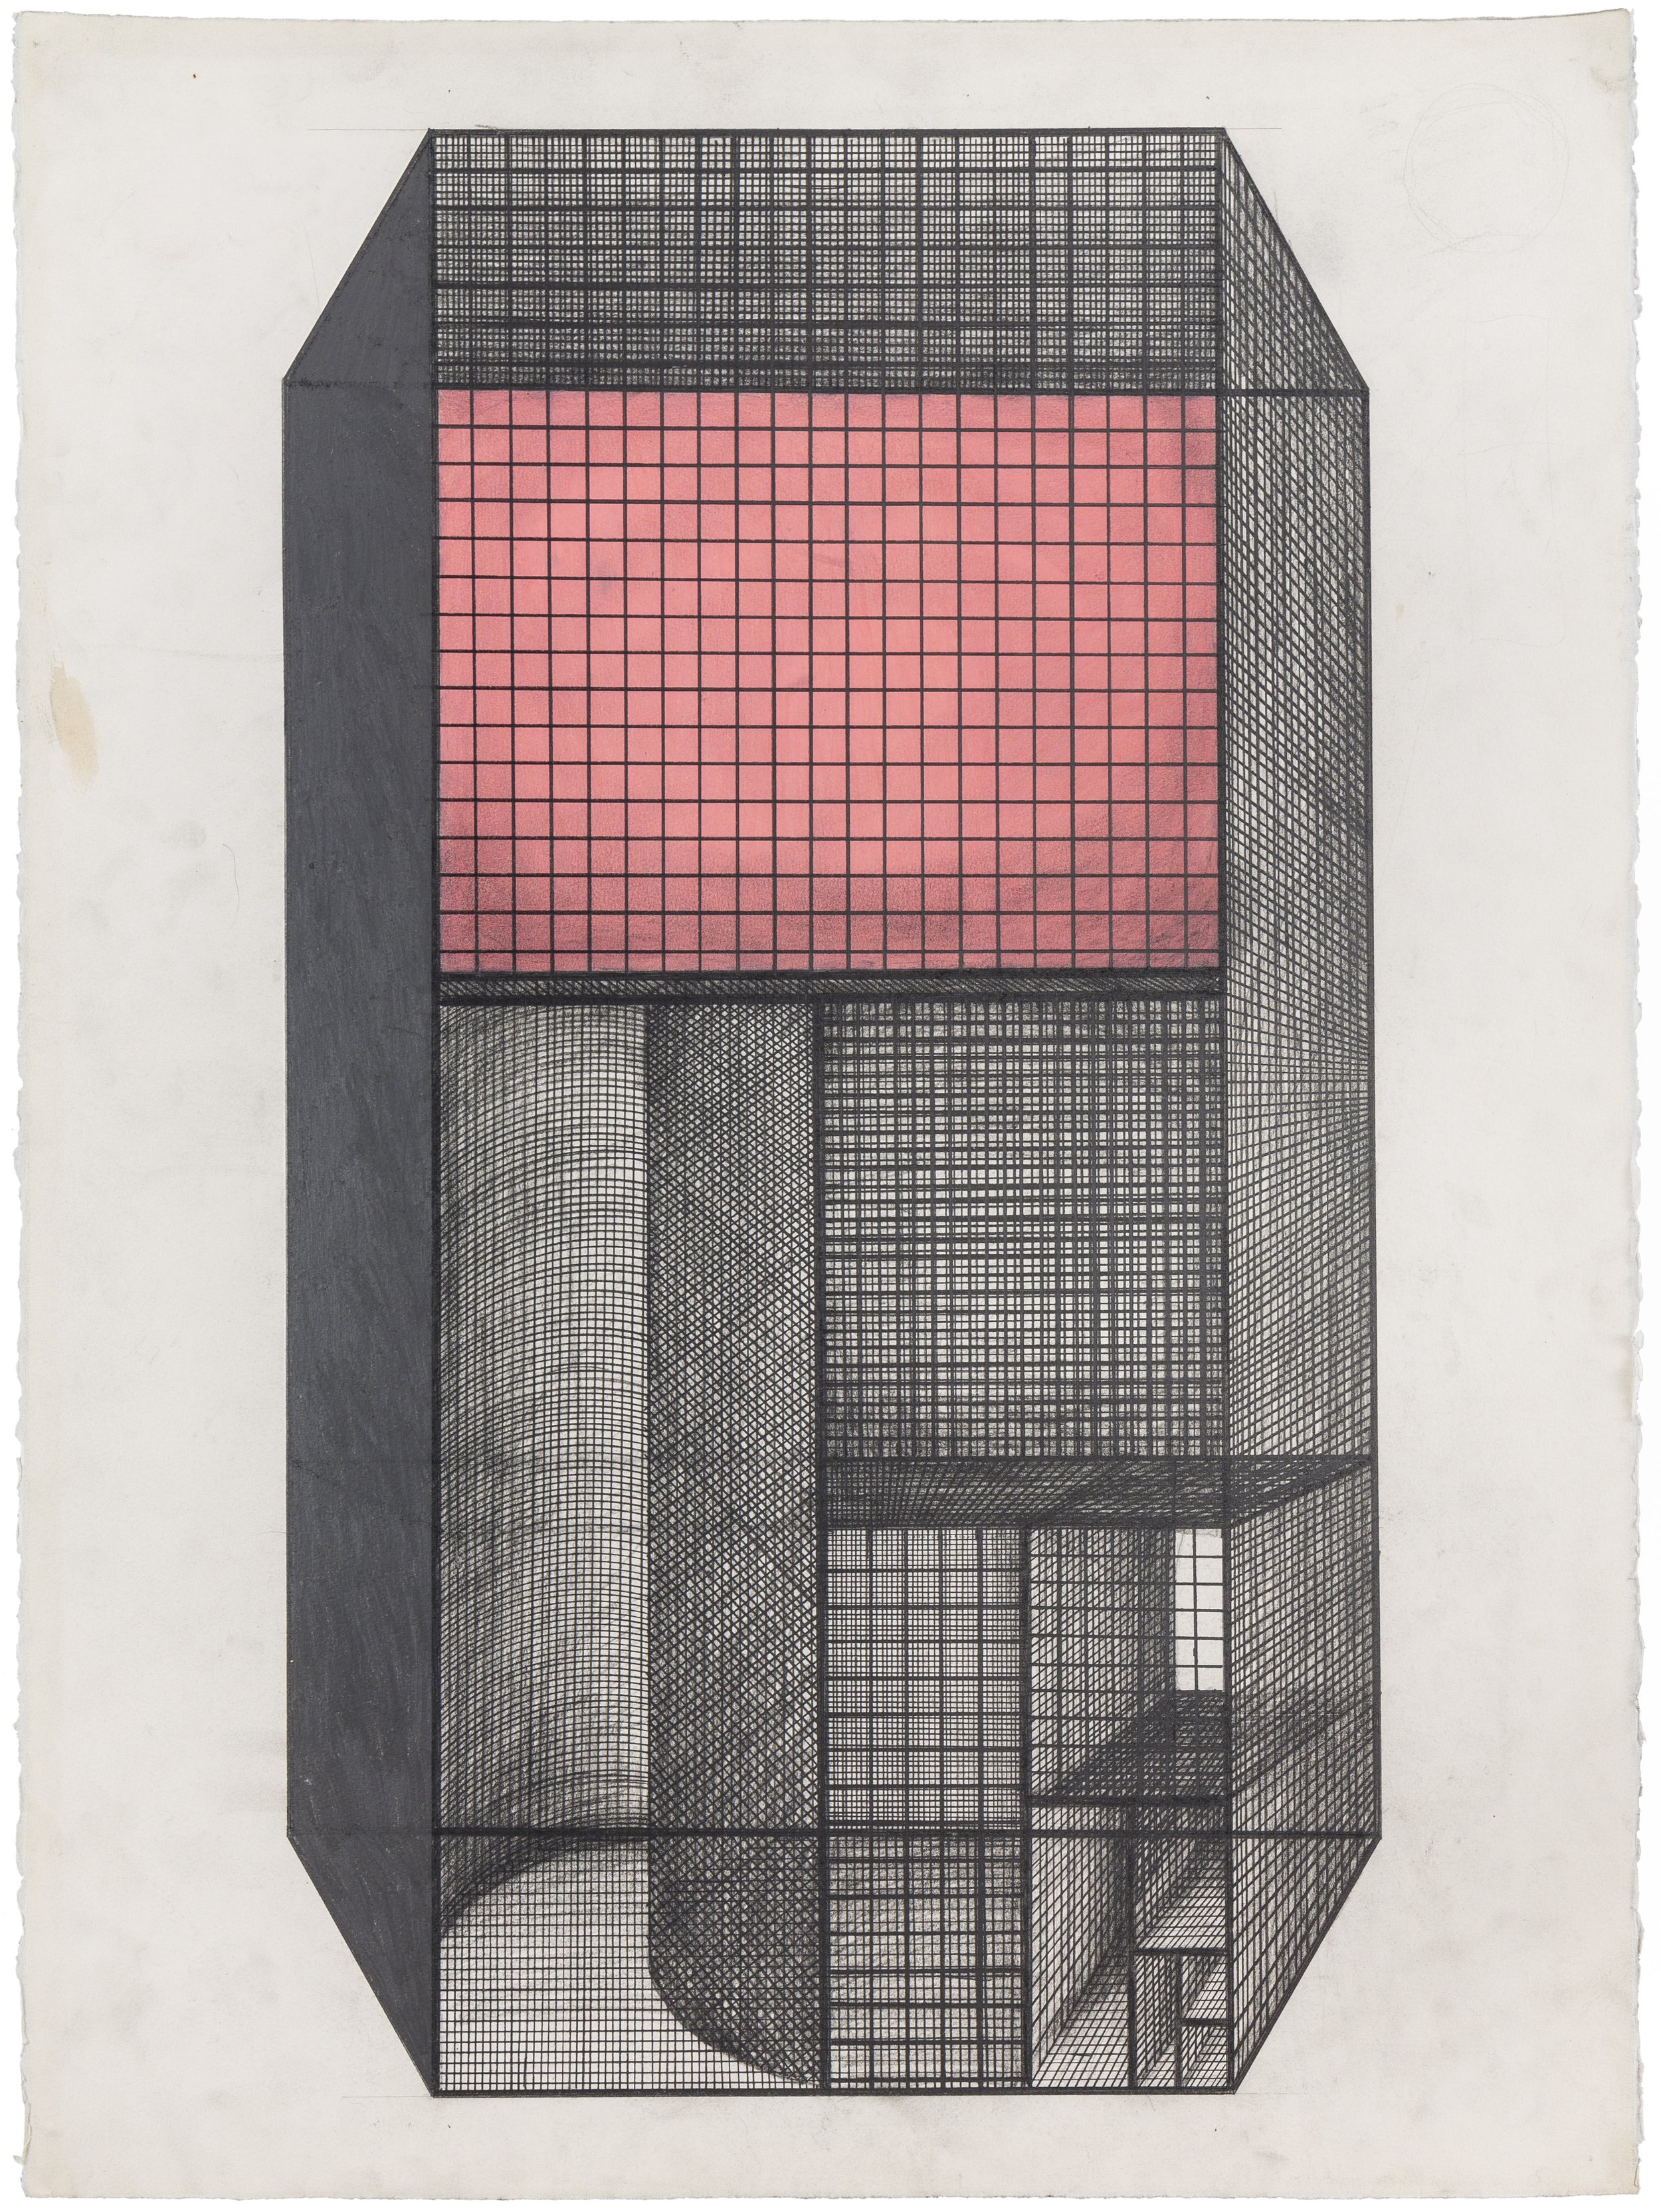 Arakawa and Madeline Gins,  Screen-Valve , 1985-87.Graphite and acrylic on paper, 30 x 22 1/2 in. © 2018 Estate of Madeline Gins. Reproduced with permission of the Estate of Madeline Gins.Photo:Nicholas Knight. Courtesy of Columbia GSAPP.